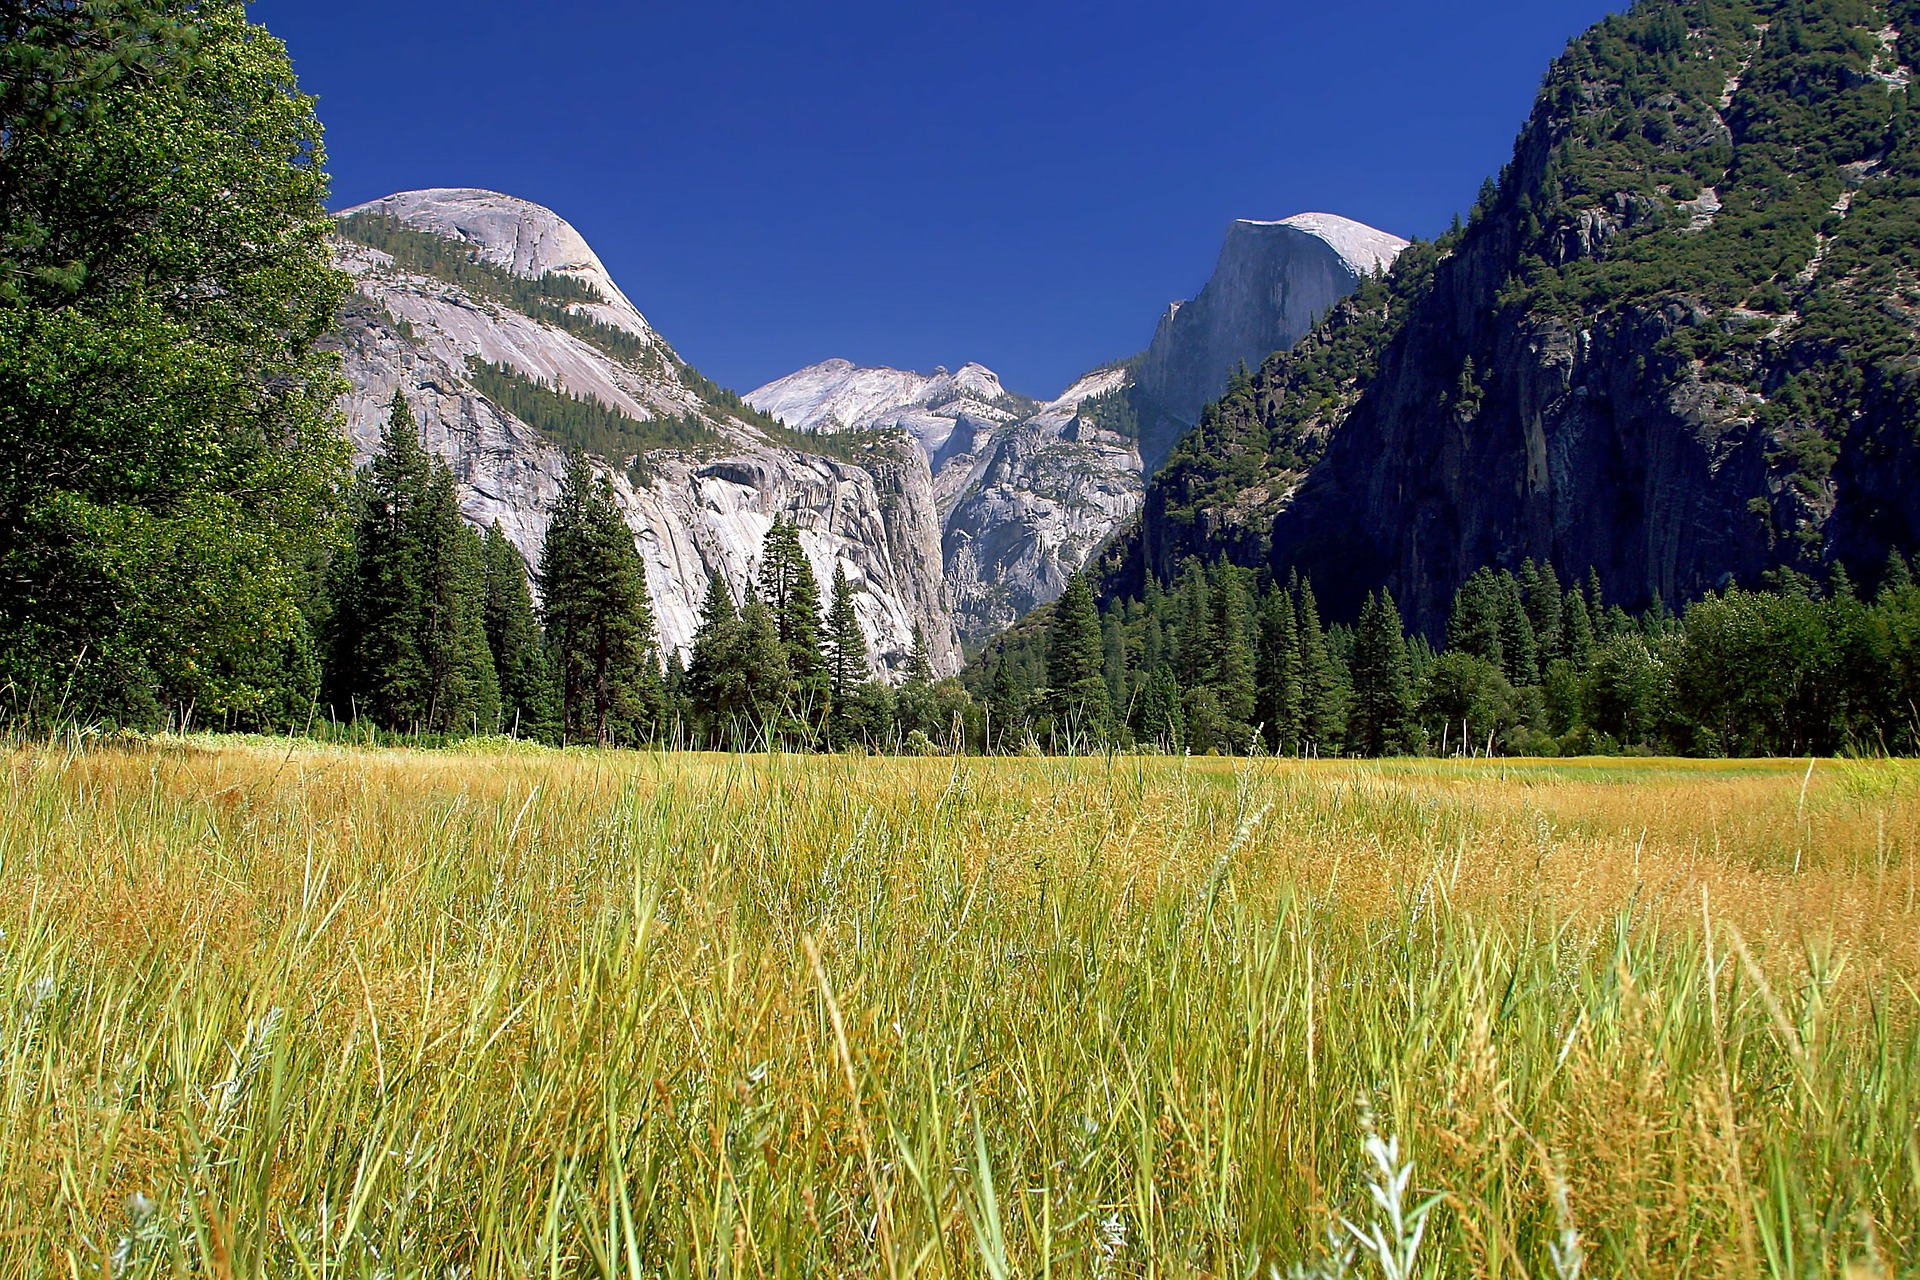 Yosemite National Park Meadow